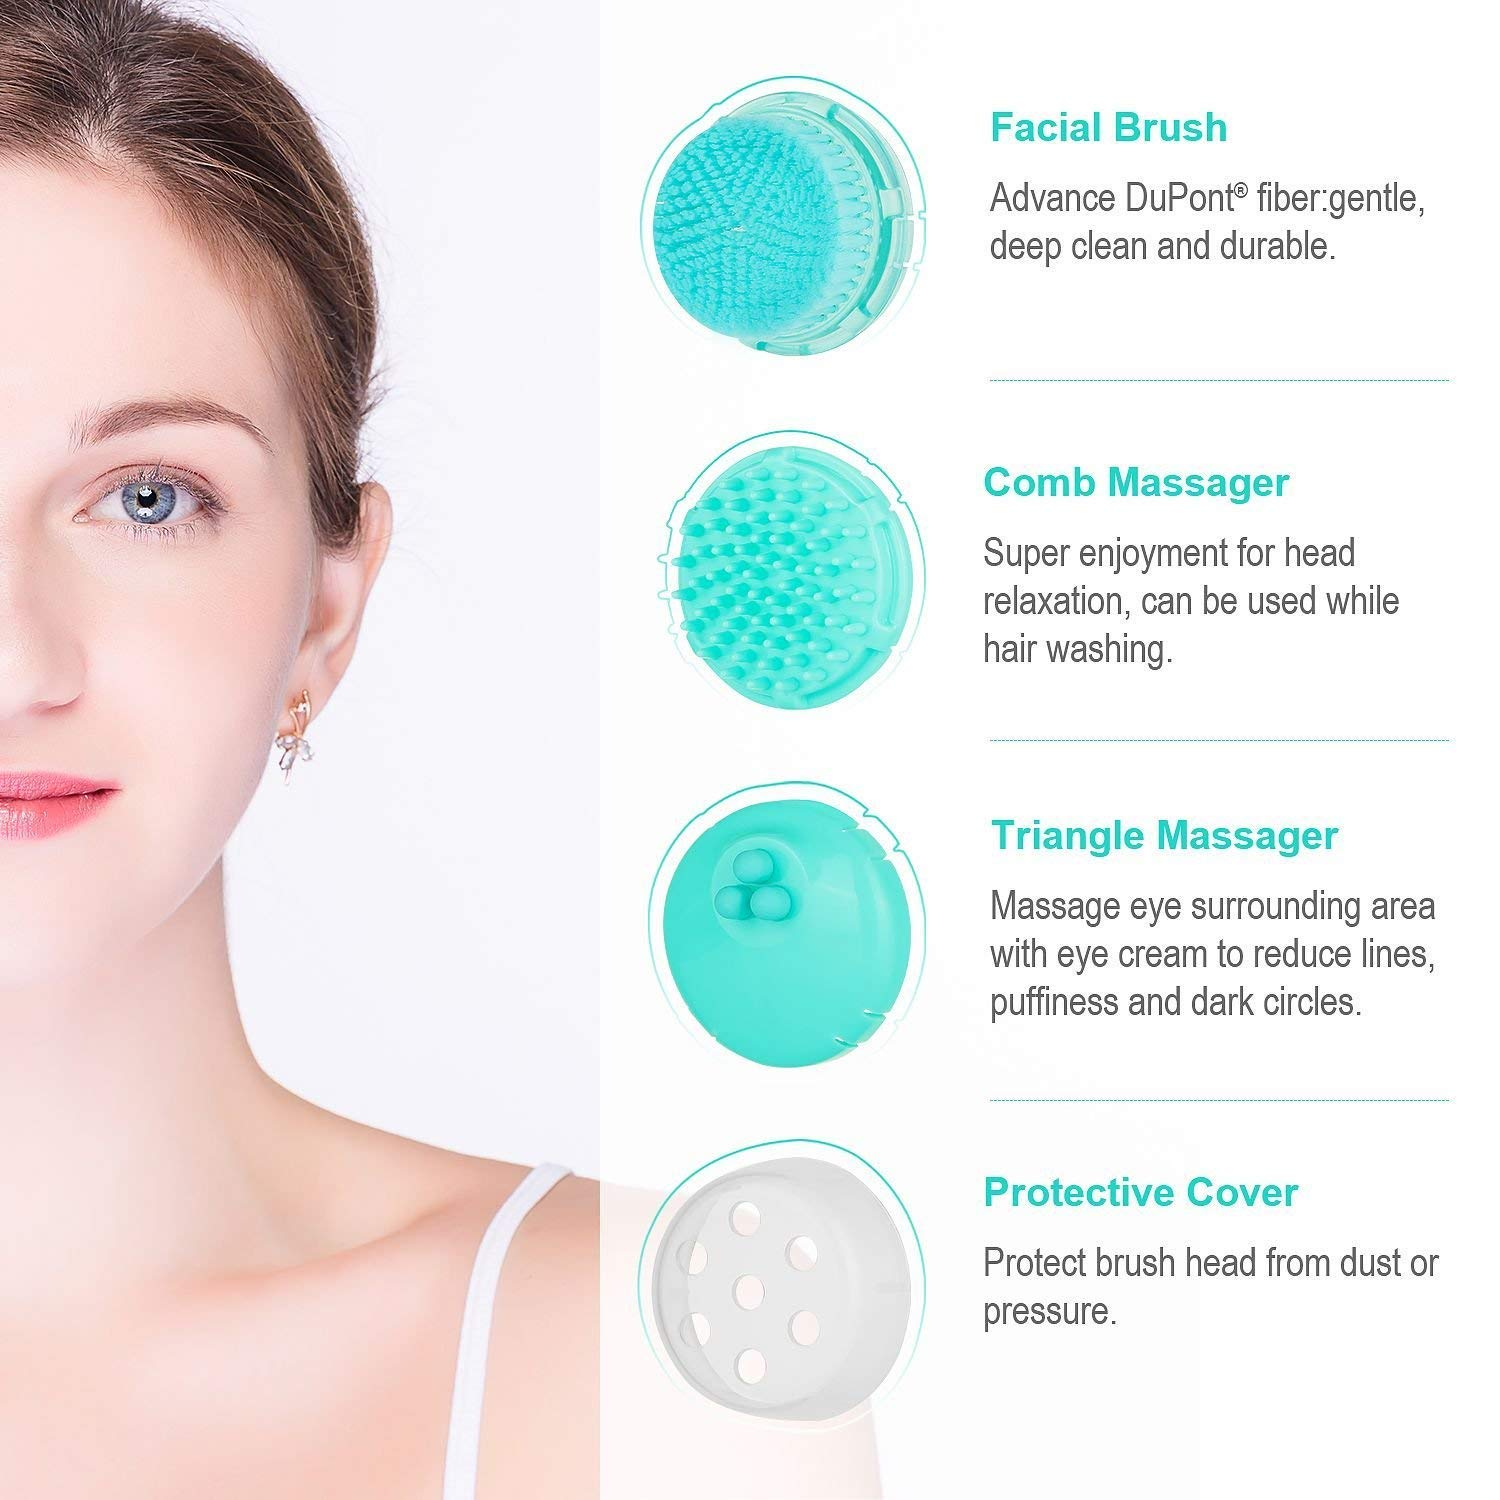 Sonic Facial Cleansing Brush with PHOTON Tech, Waterproof Vibrating Face Brush Set with 2 Speeds for Gentle& Deep Cleansing, 3-in-1 Electric Face&Head Massager, Beautifive